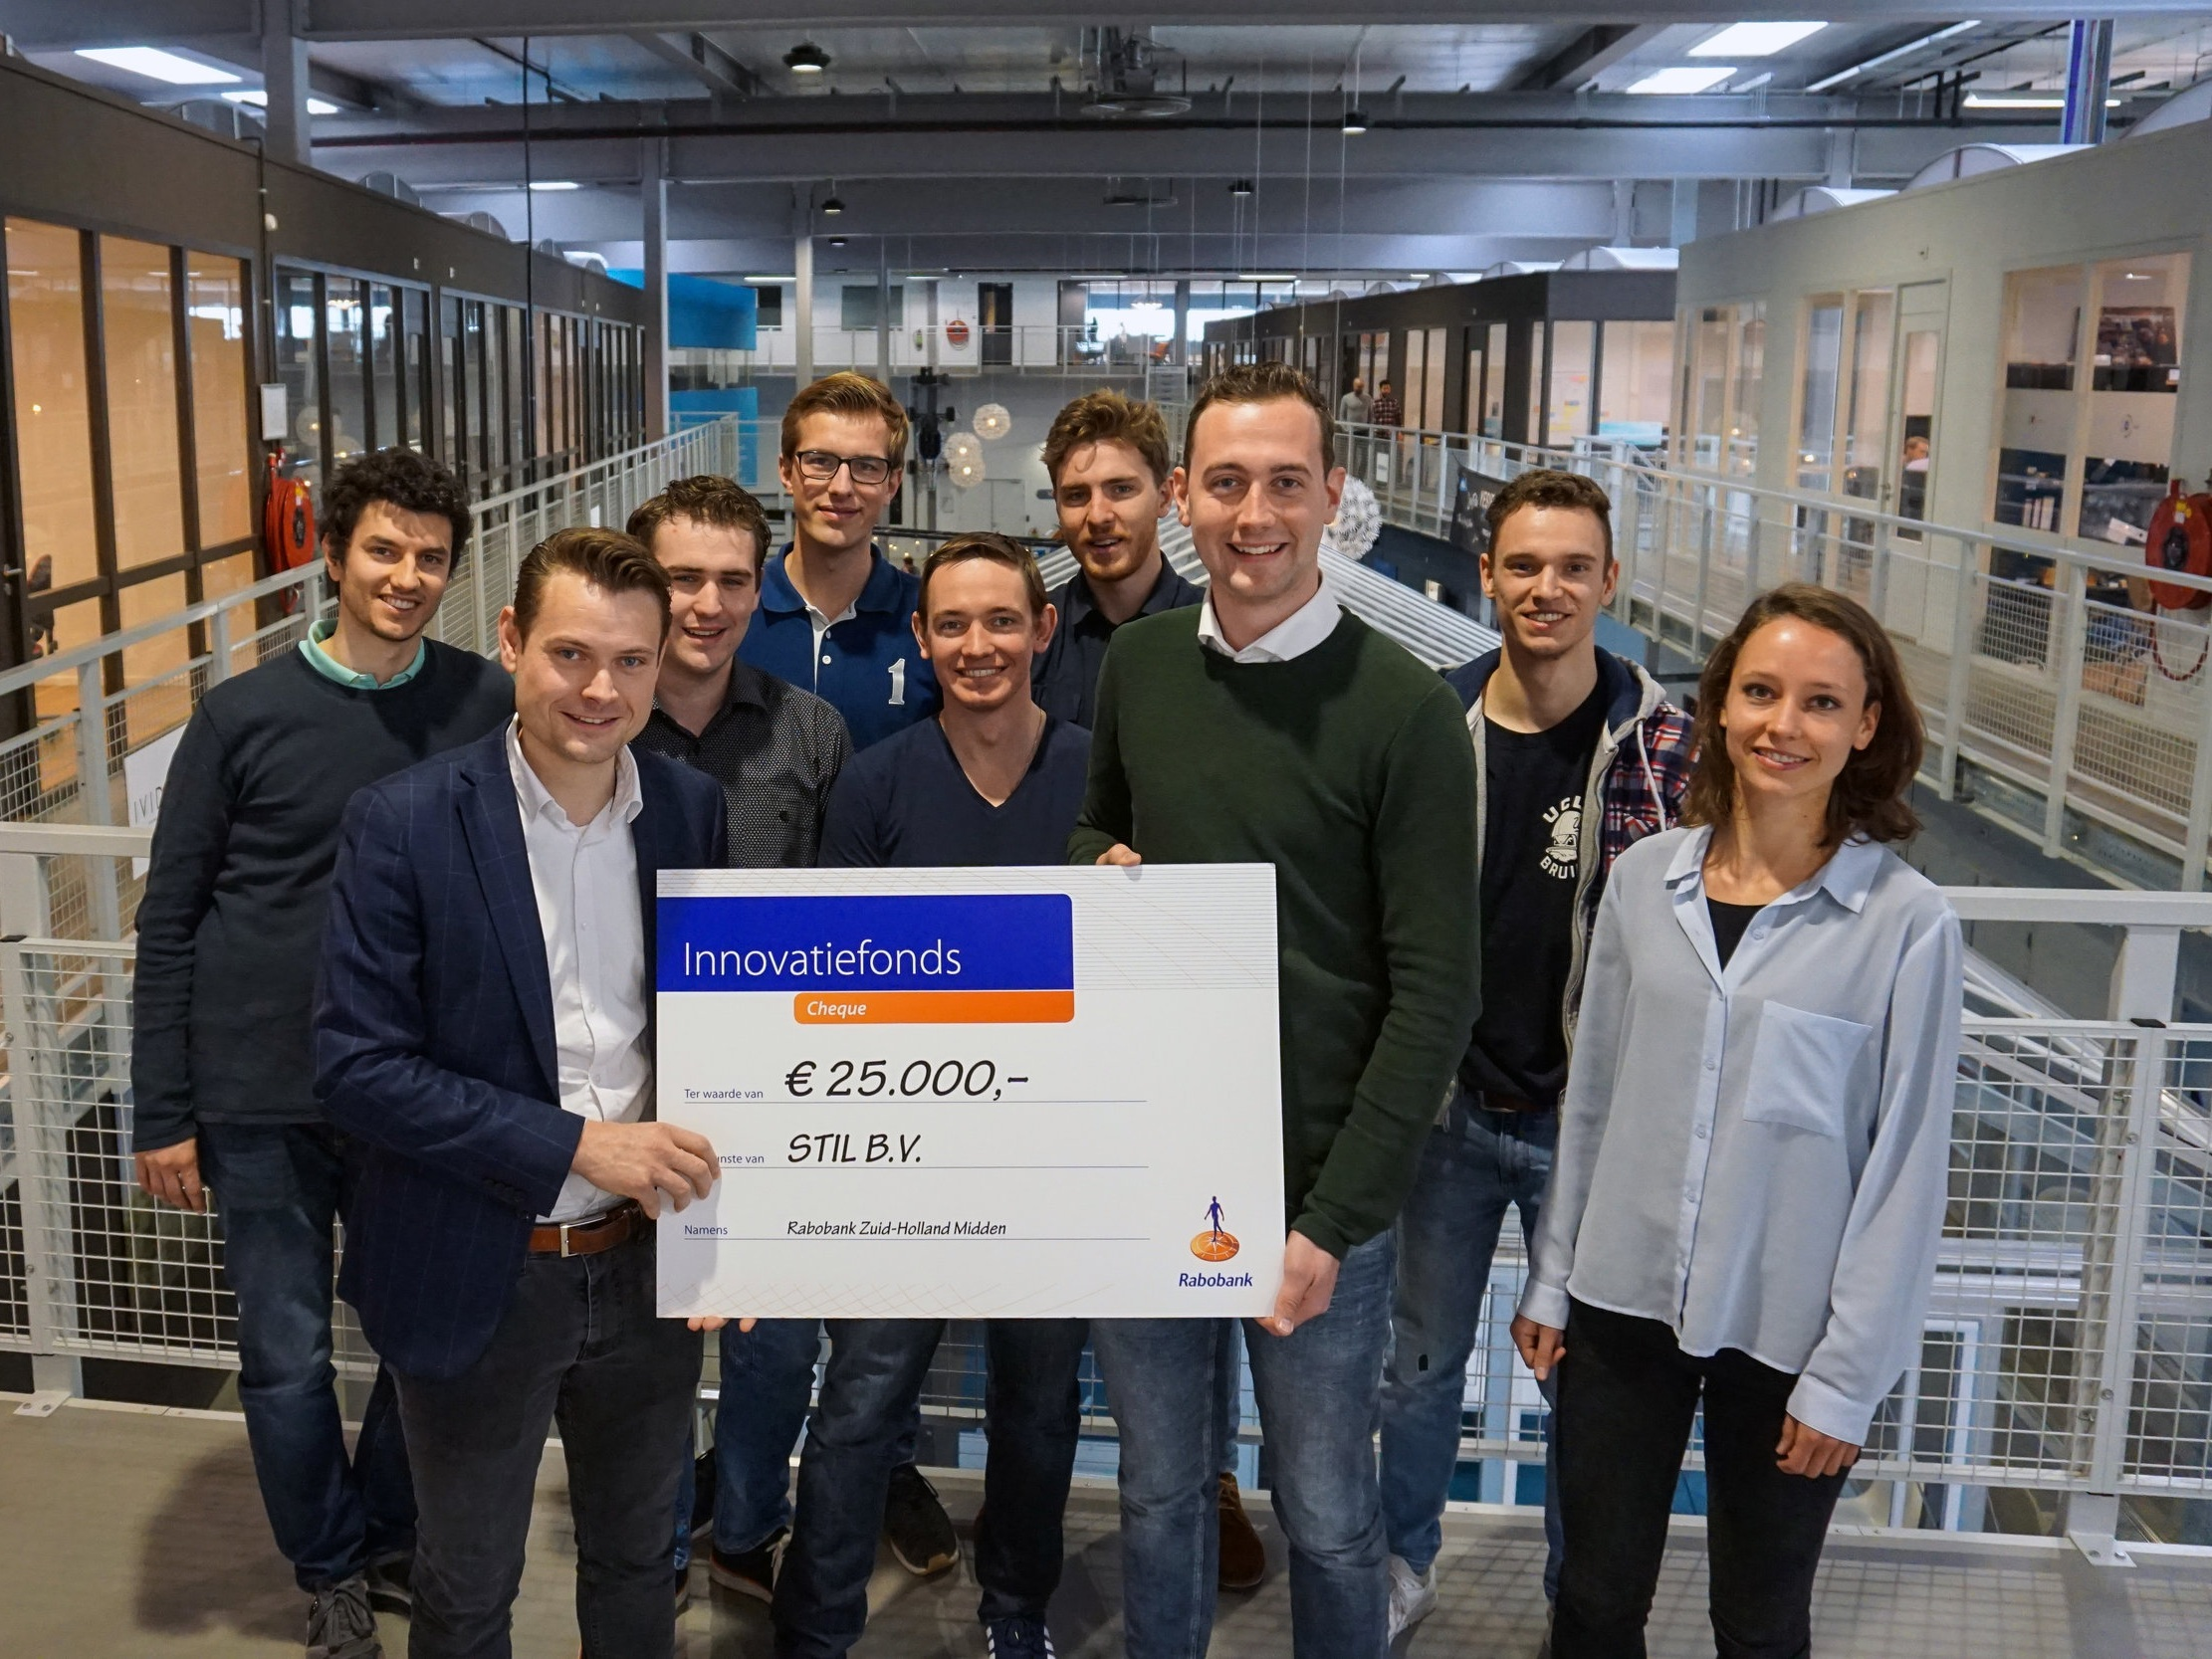 STIL receives a grant from the Rabobank Innovation Fund - March 2019The Rabobank Innovation Fund supports startups in their early phase. STIL received a grant which will be used to optimize the brace for patient use and to overcome regulatory aspects.